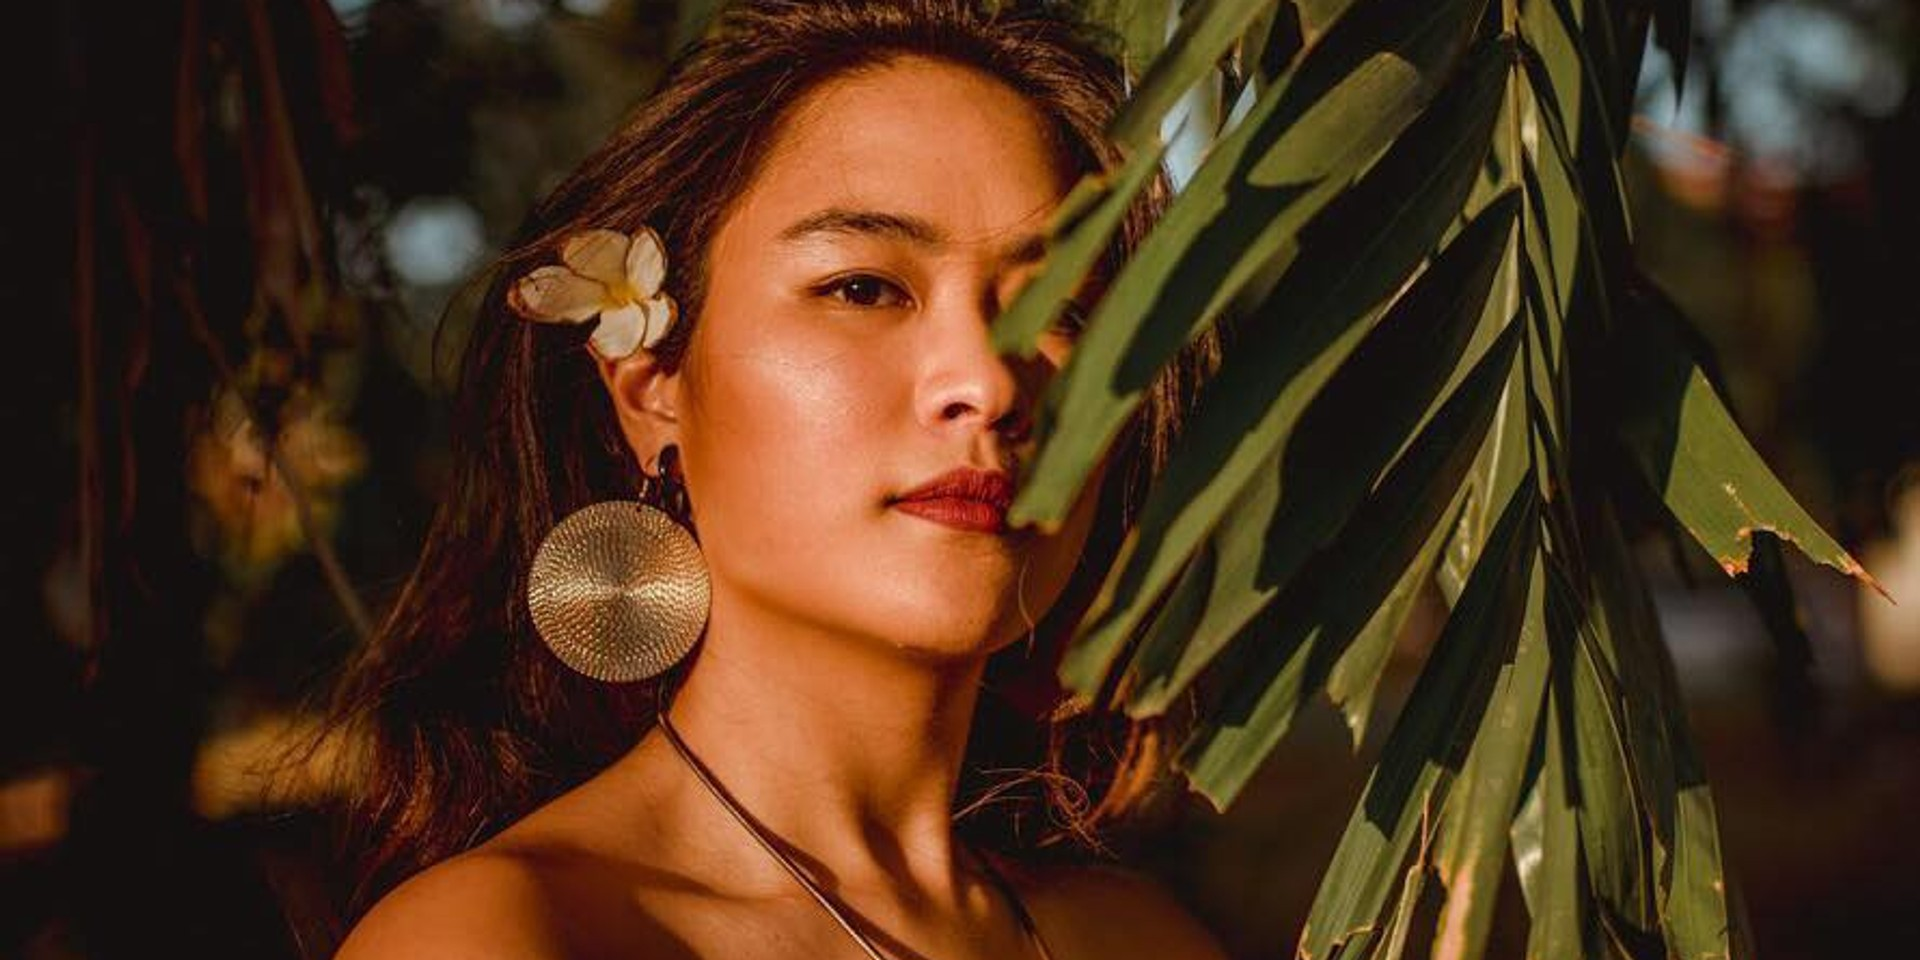 Rice Lucido to kick off Hele ng Maharlika tour with intimate invite-only show